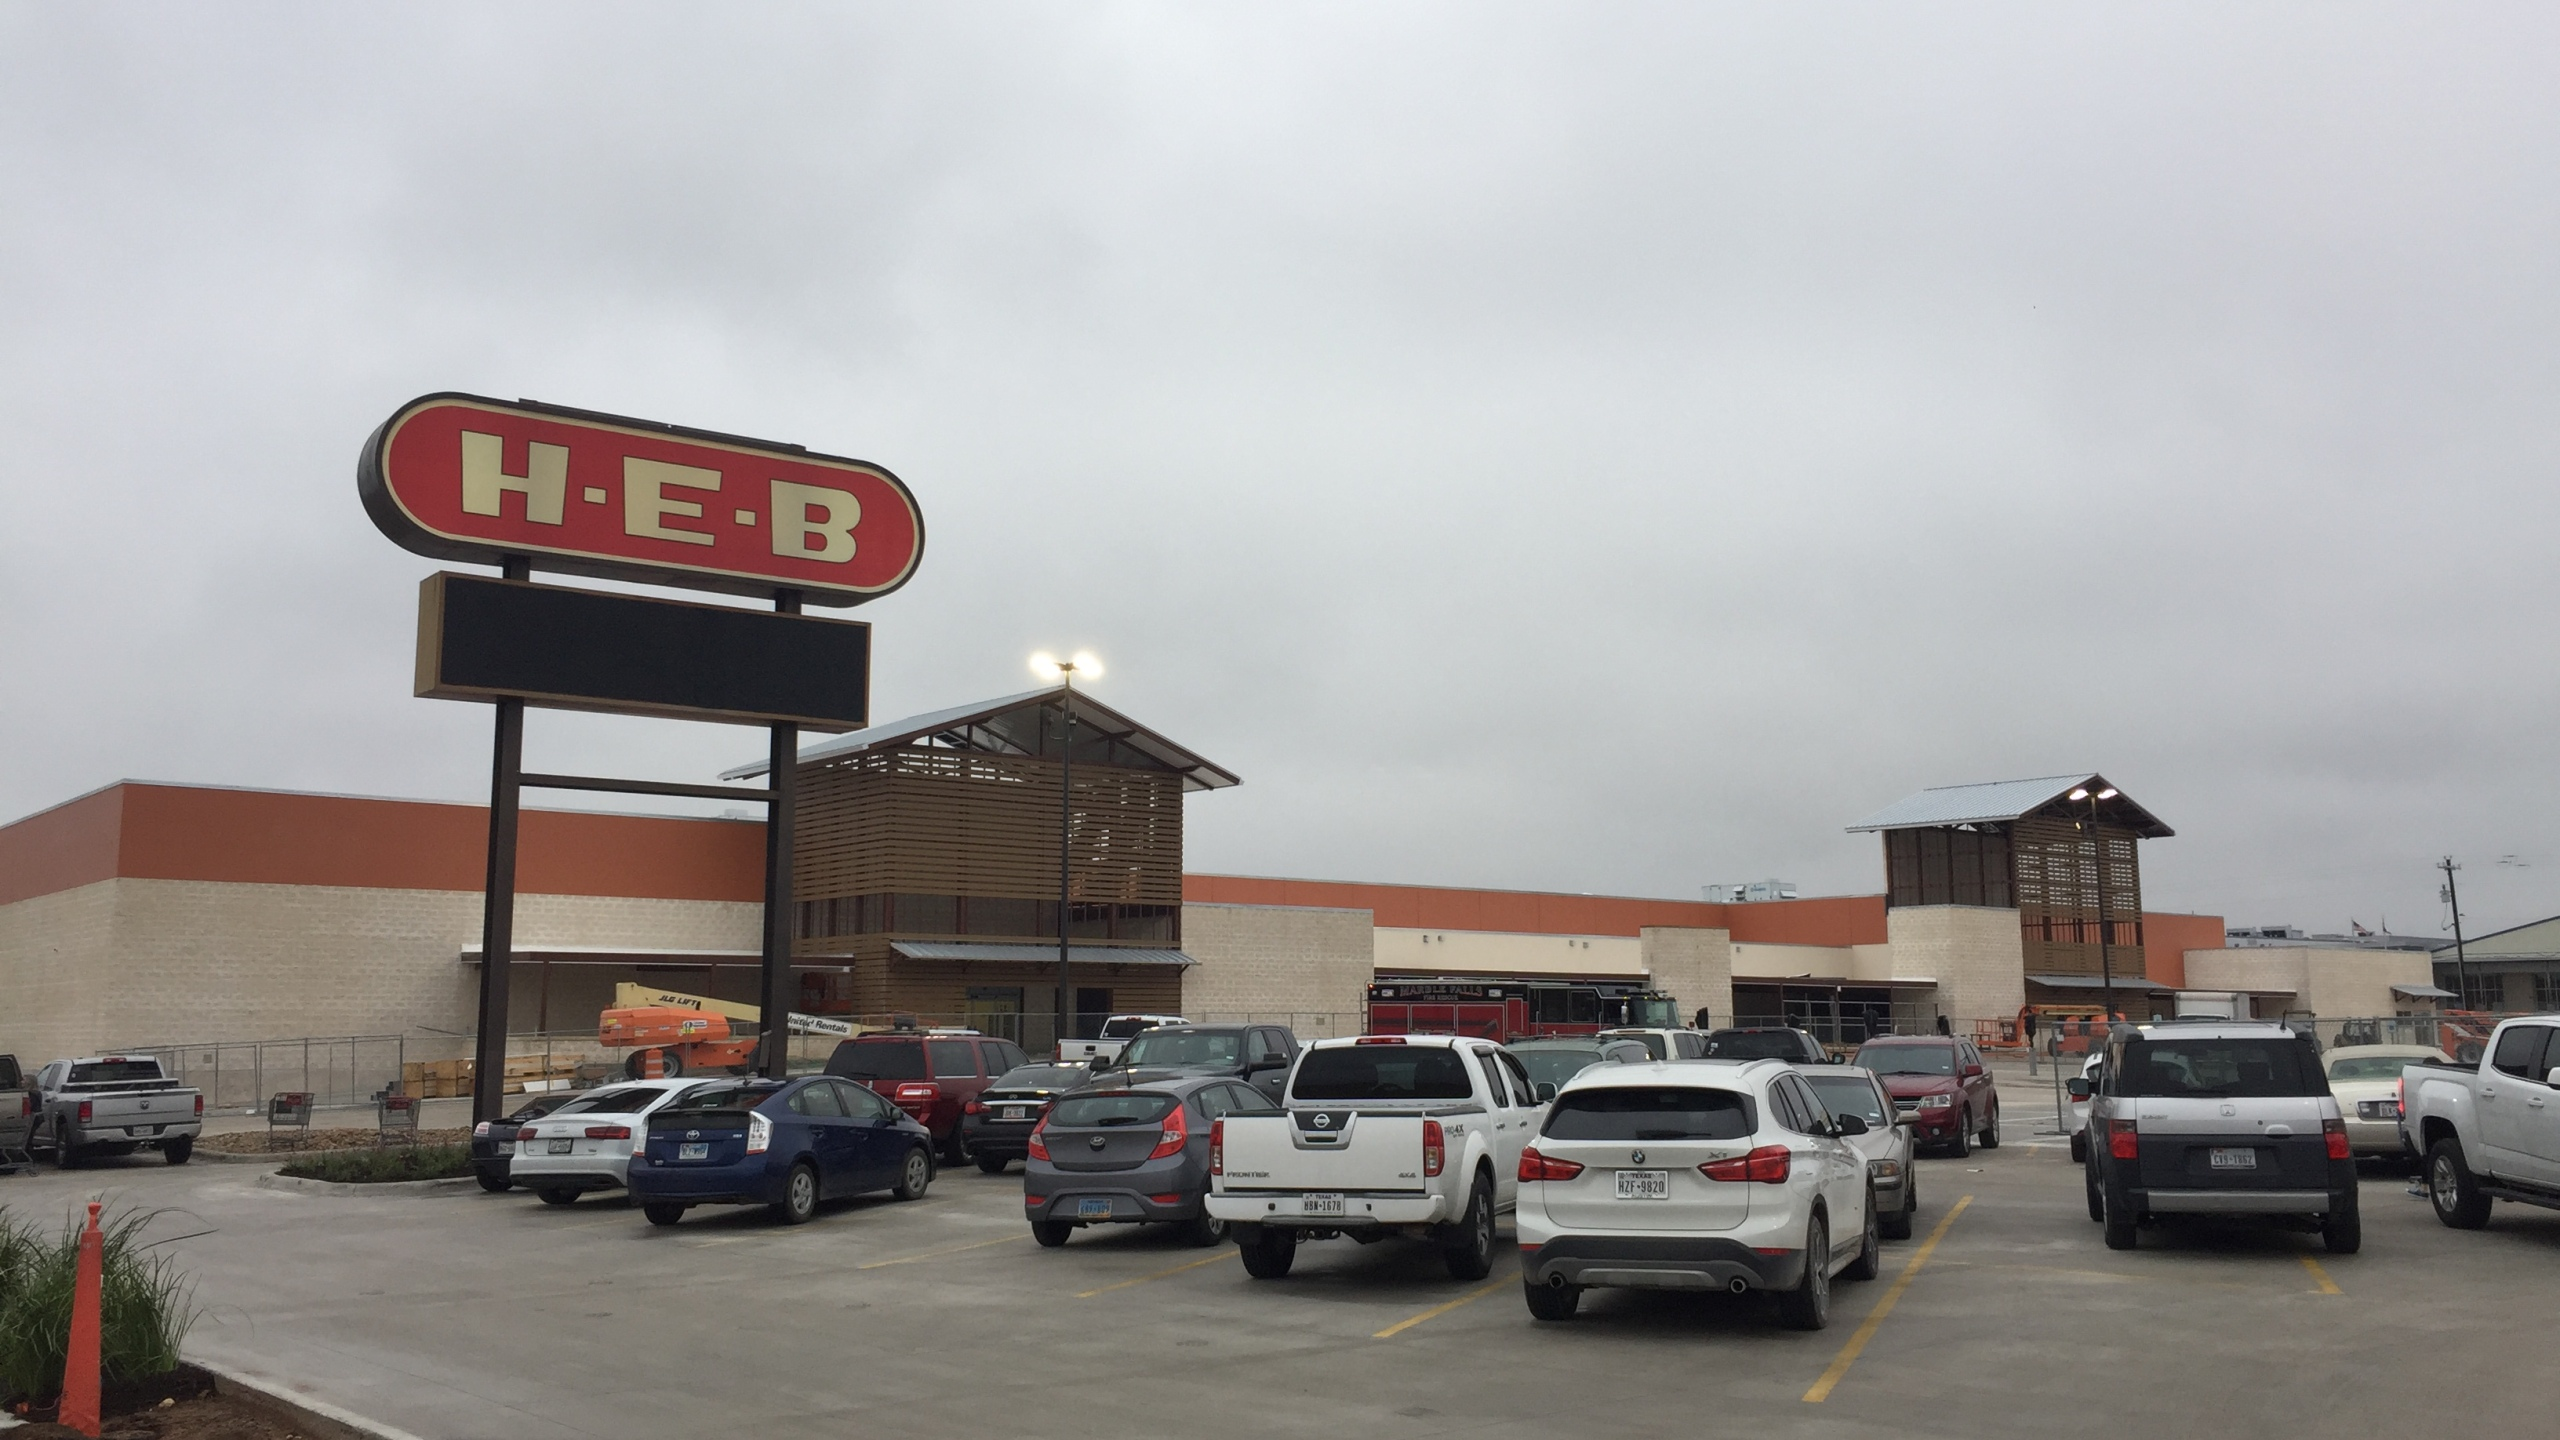 12.22.17 H-E-B Marble Falls store front_631602